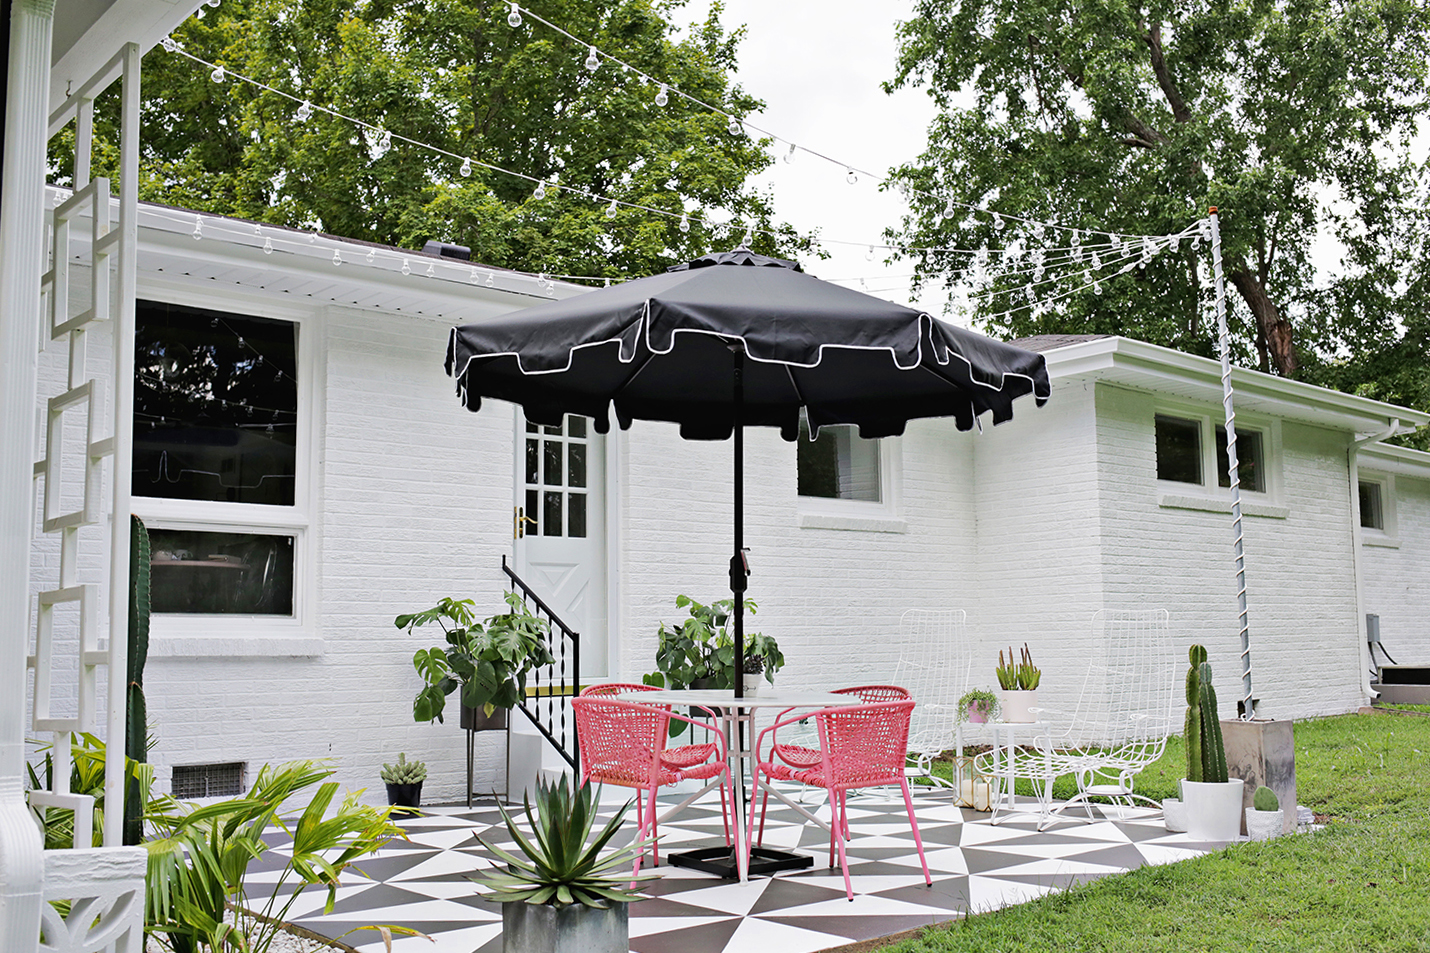 Small Backyard Ideas Umbrella Lighting Html on small landscape design ideas, small backyard fireplace, small outdoor kitchens ideas, laundry room lighting ideas, garage lighting ideas, carport lighting ideas, patio lighting ideas, small backyard decoration, small backyard design, small backyard makeovers, easy outdoor lighting ideas, backyard privacy landscaping ideas, small backyard projects, fireplace lighting ideas, small backyard garden, small backyard furniture, bathroom lighting ideas, small antler chandelier ideas, unfinished basement lighting ideas, small garden ideas,